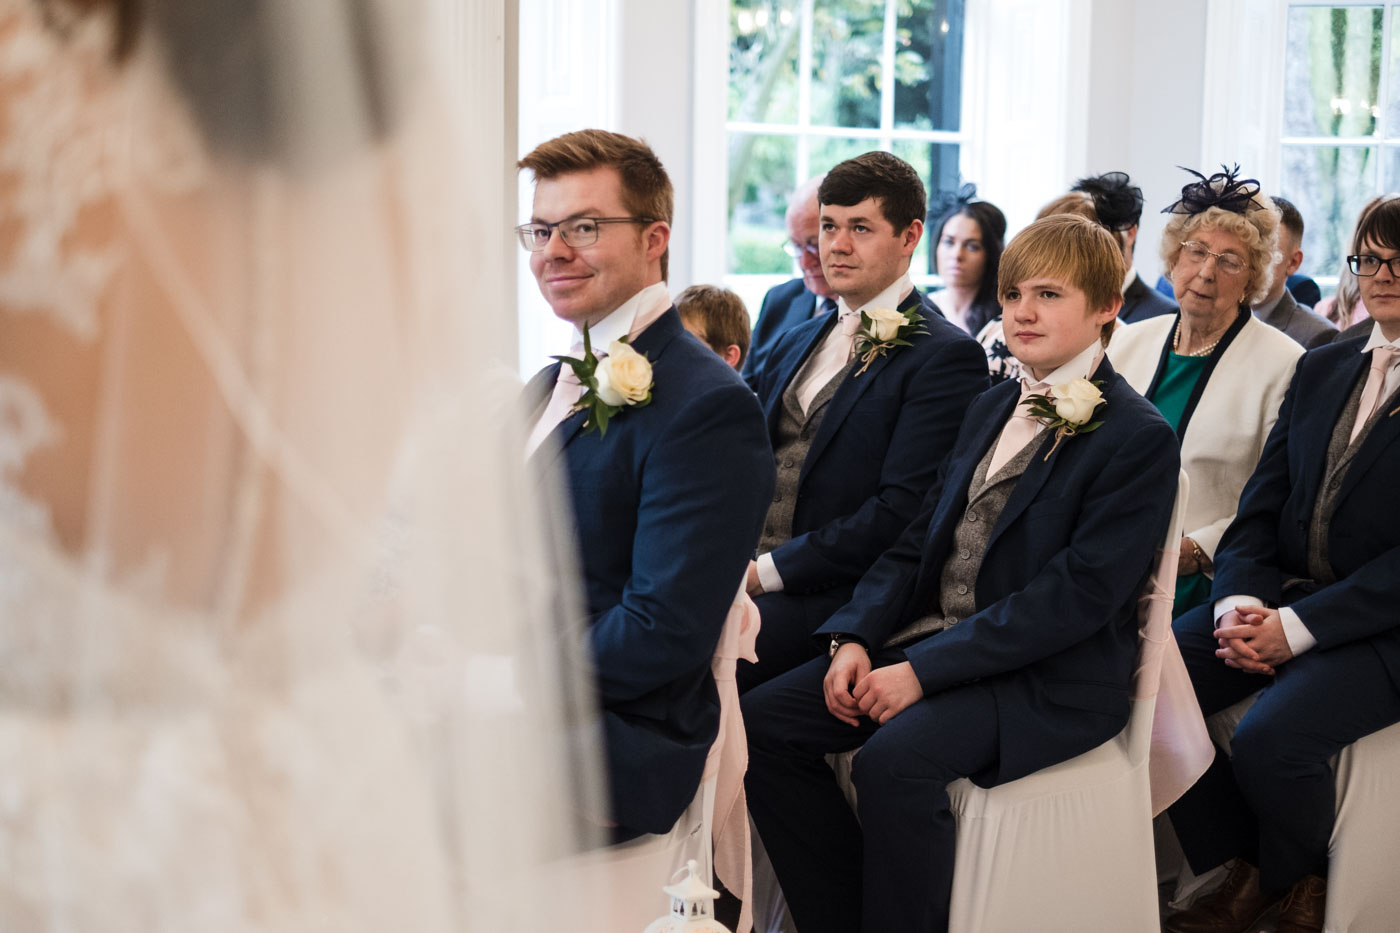 wedding guest reactions in the ceremony room